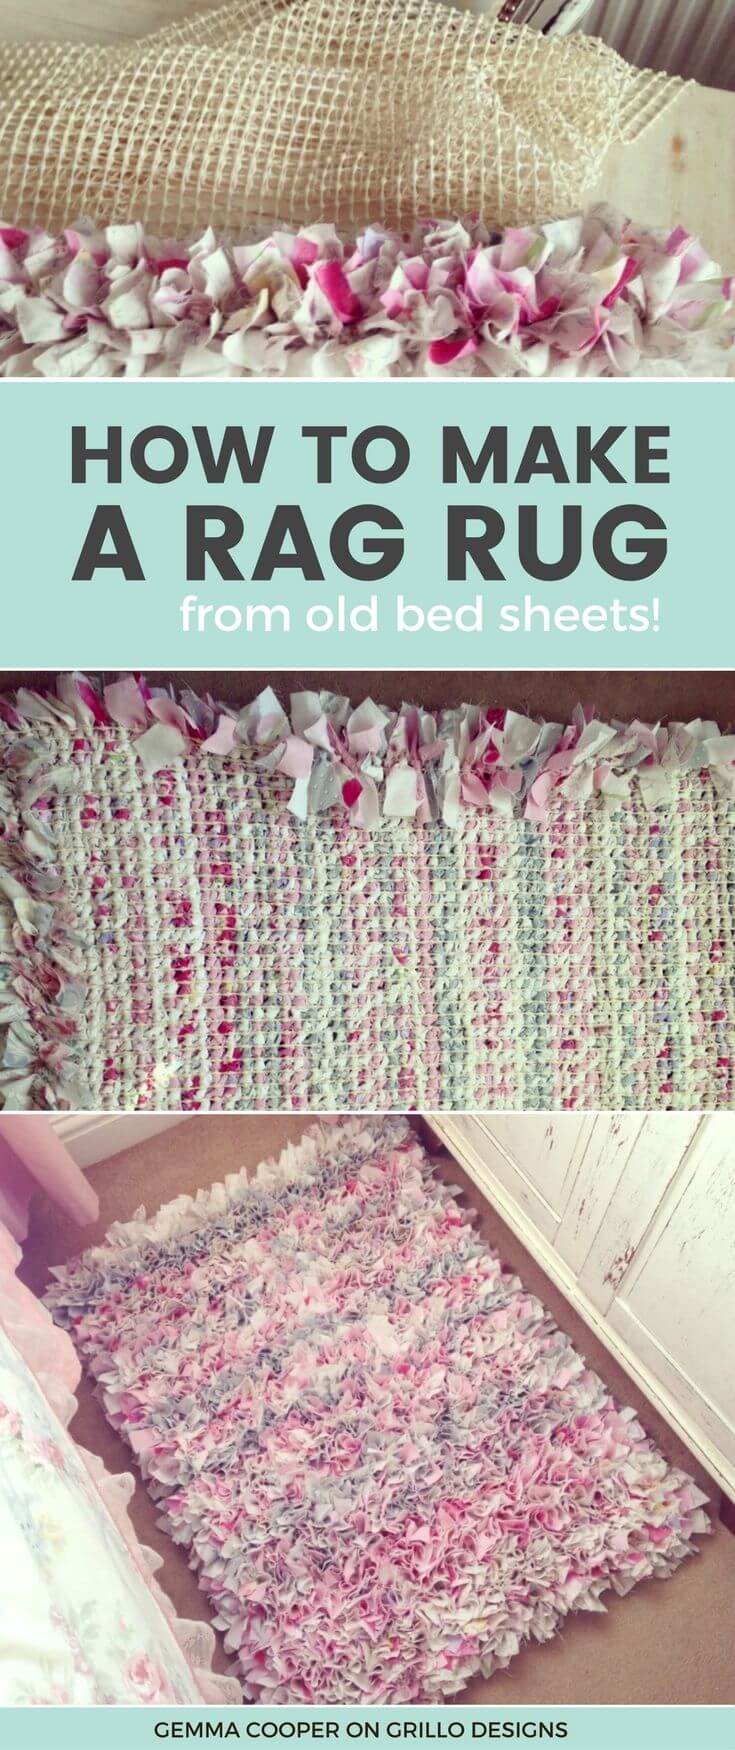 DIY Rug Ideas for Rag Rugs